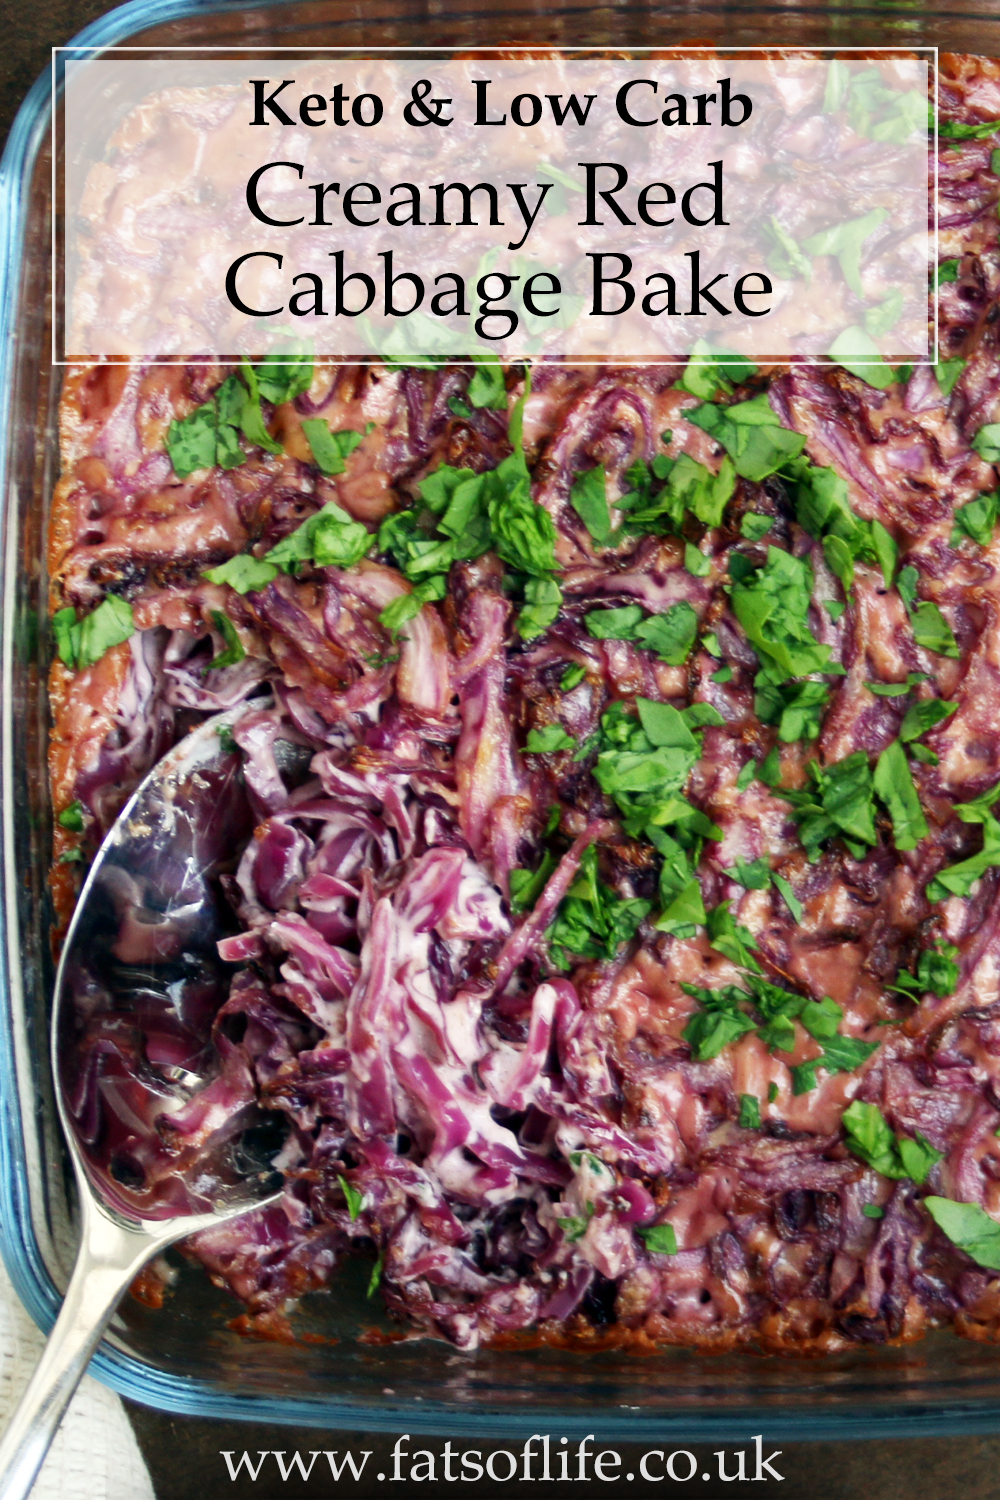 Creamy Red Cabbage Bake